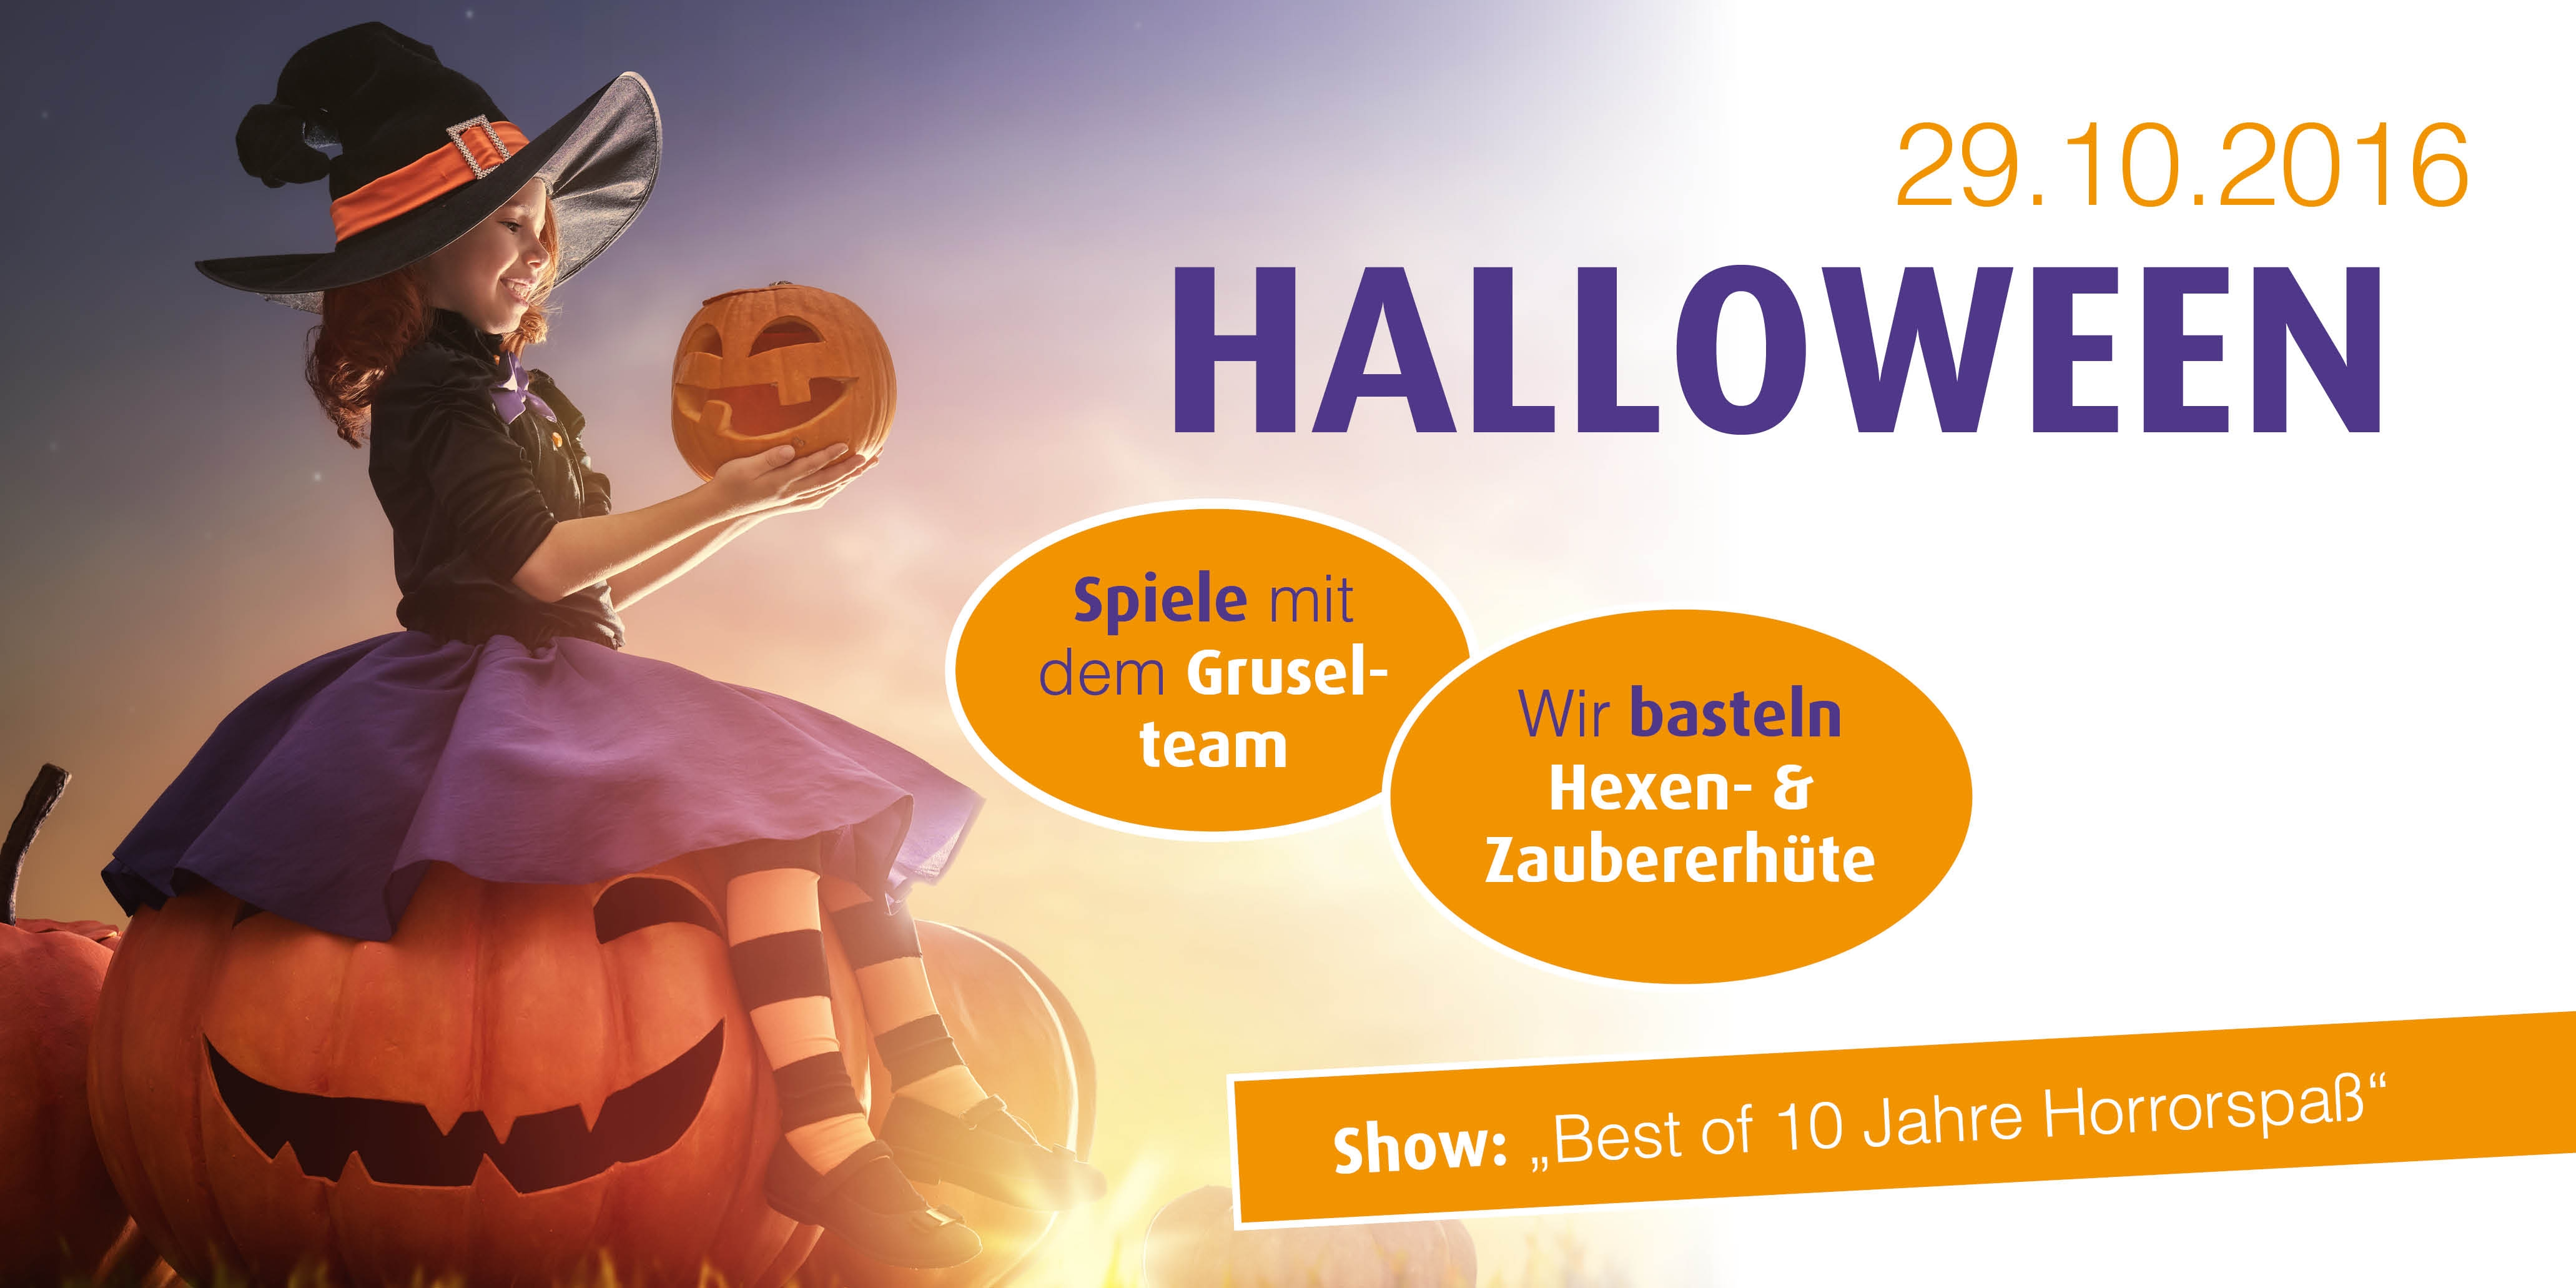 Halloweenparty in Wust